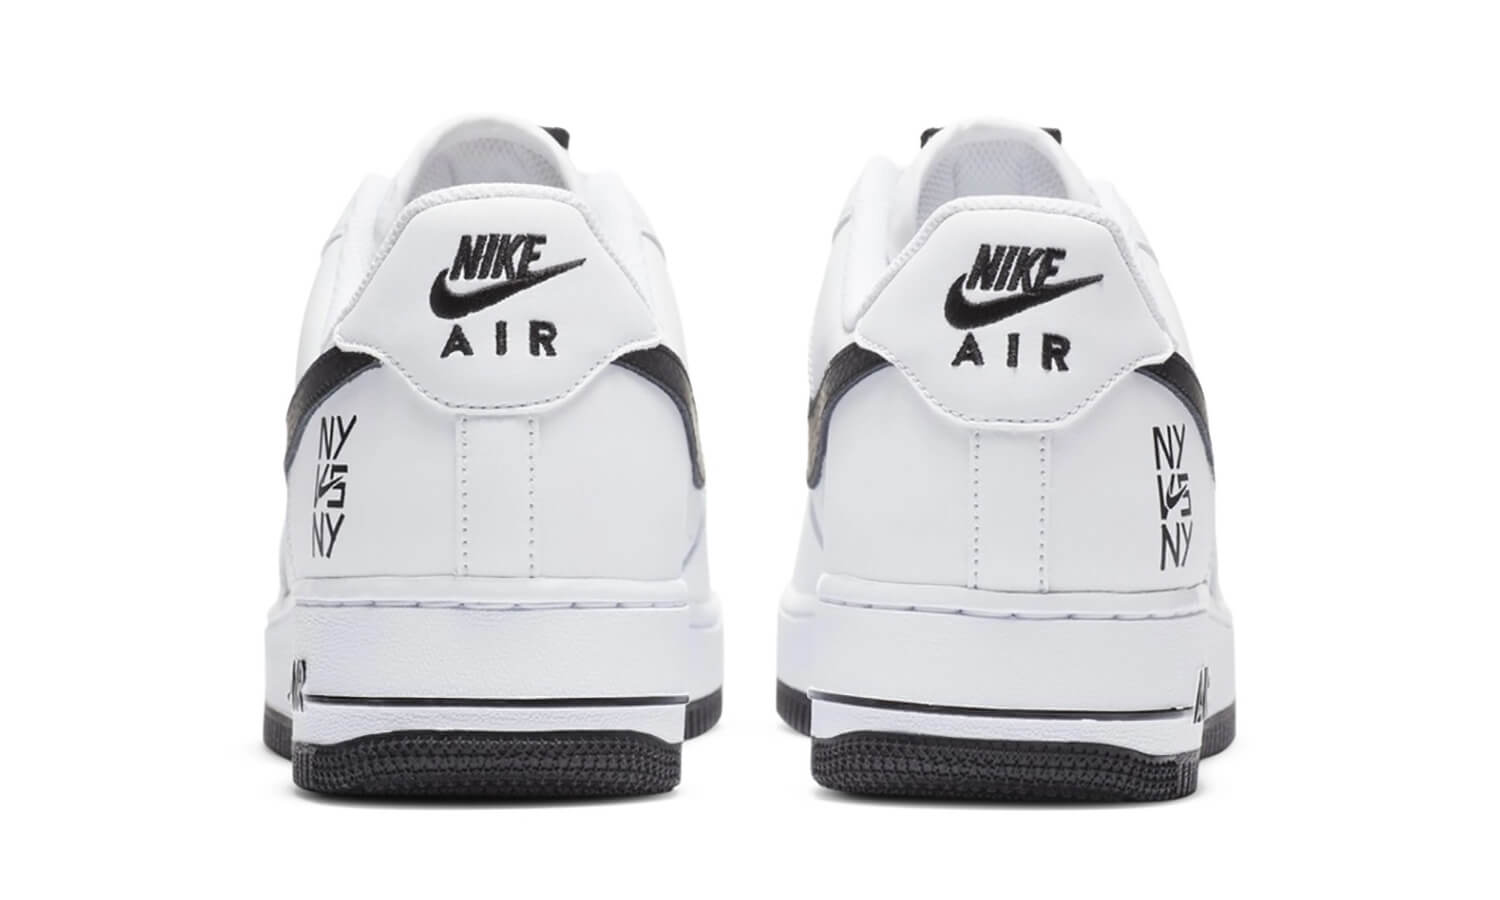 Nike Air Force 1 NY vs NY